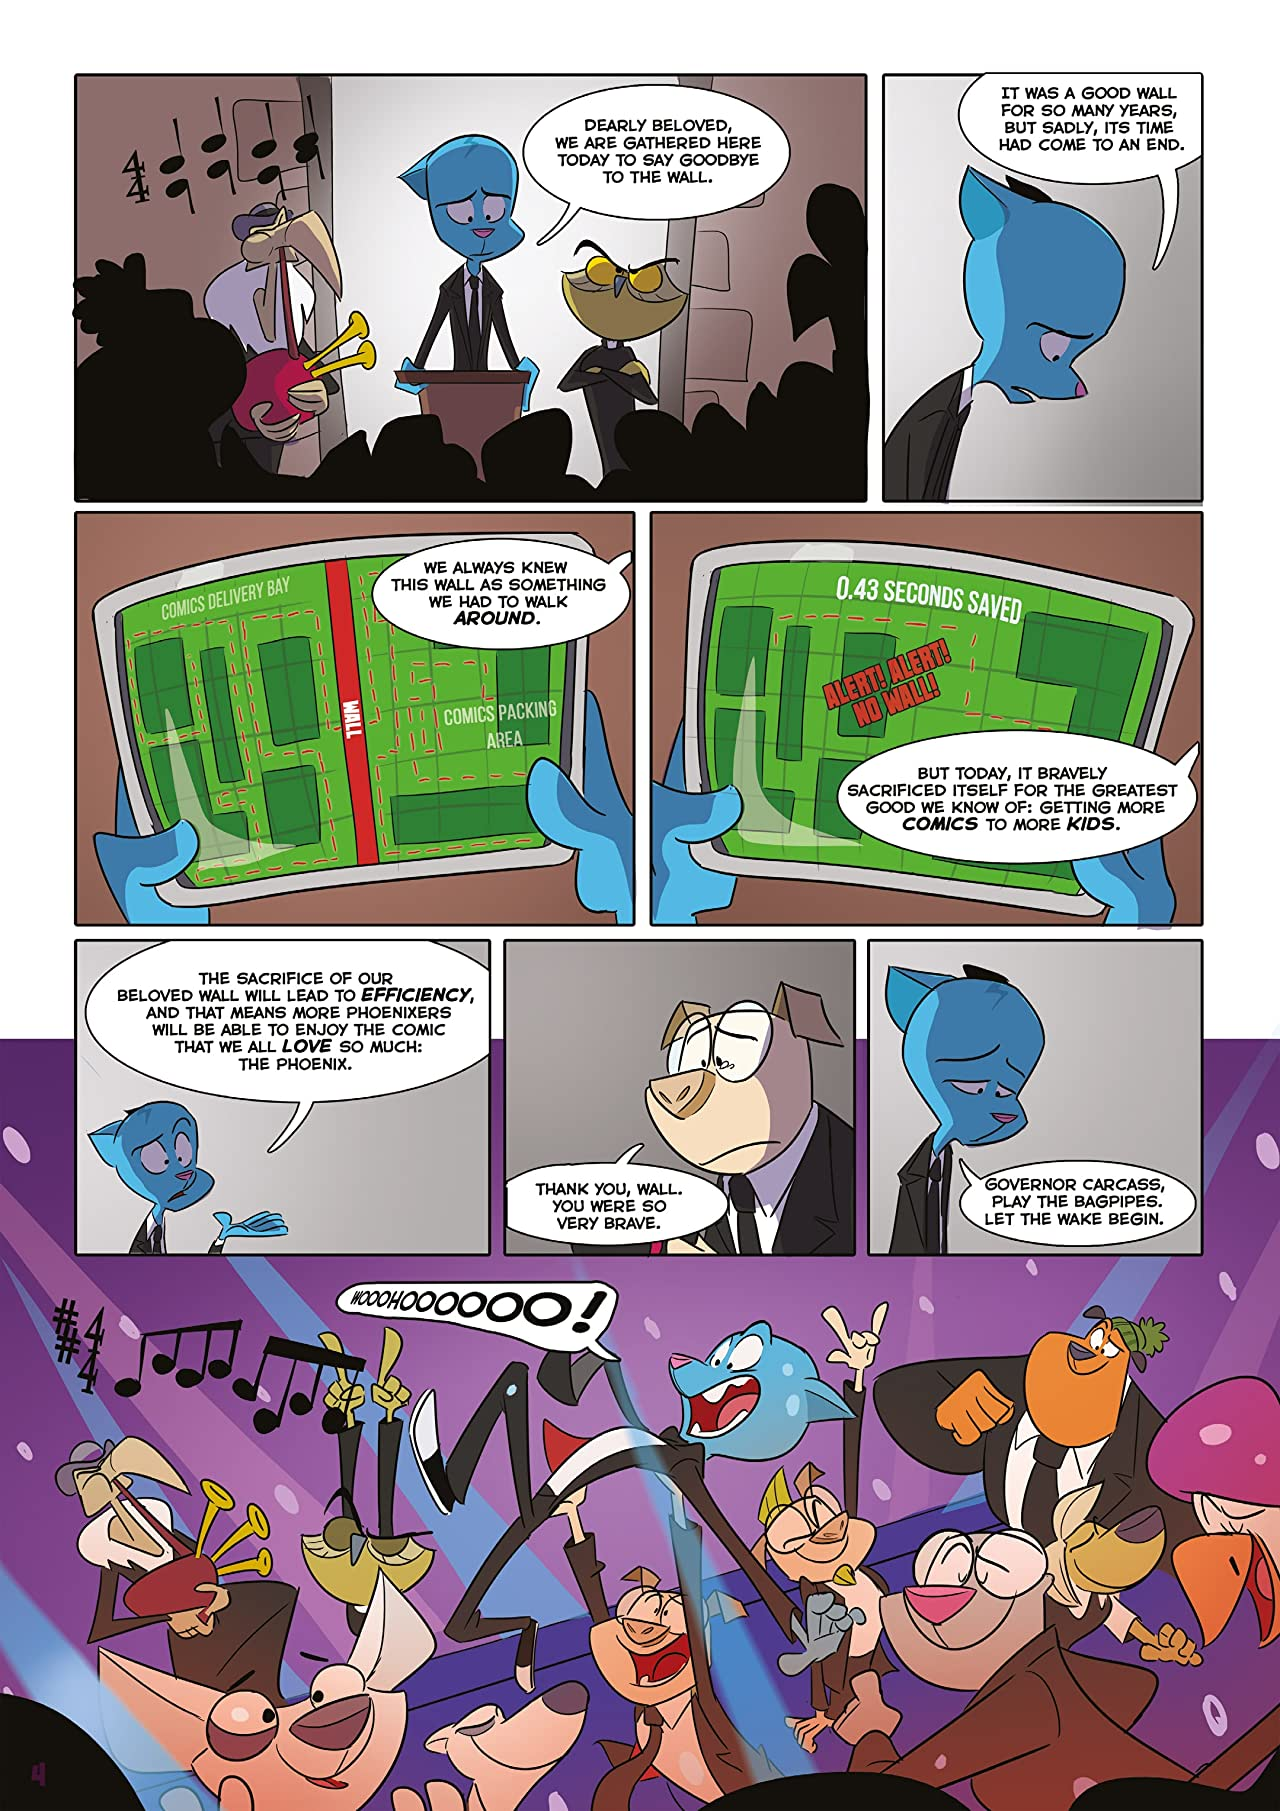 The Phoenix #306: The Weekly Story Comic